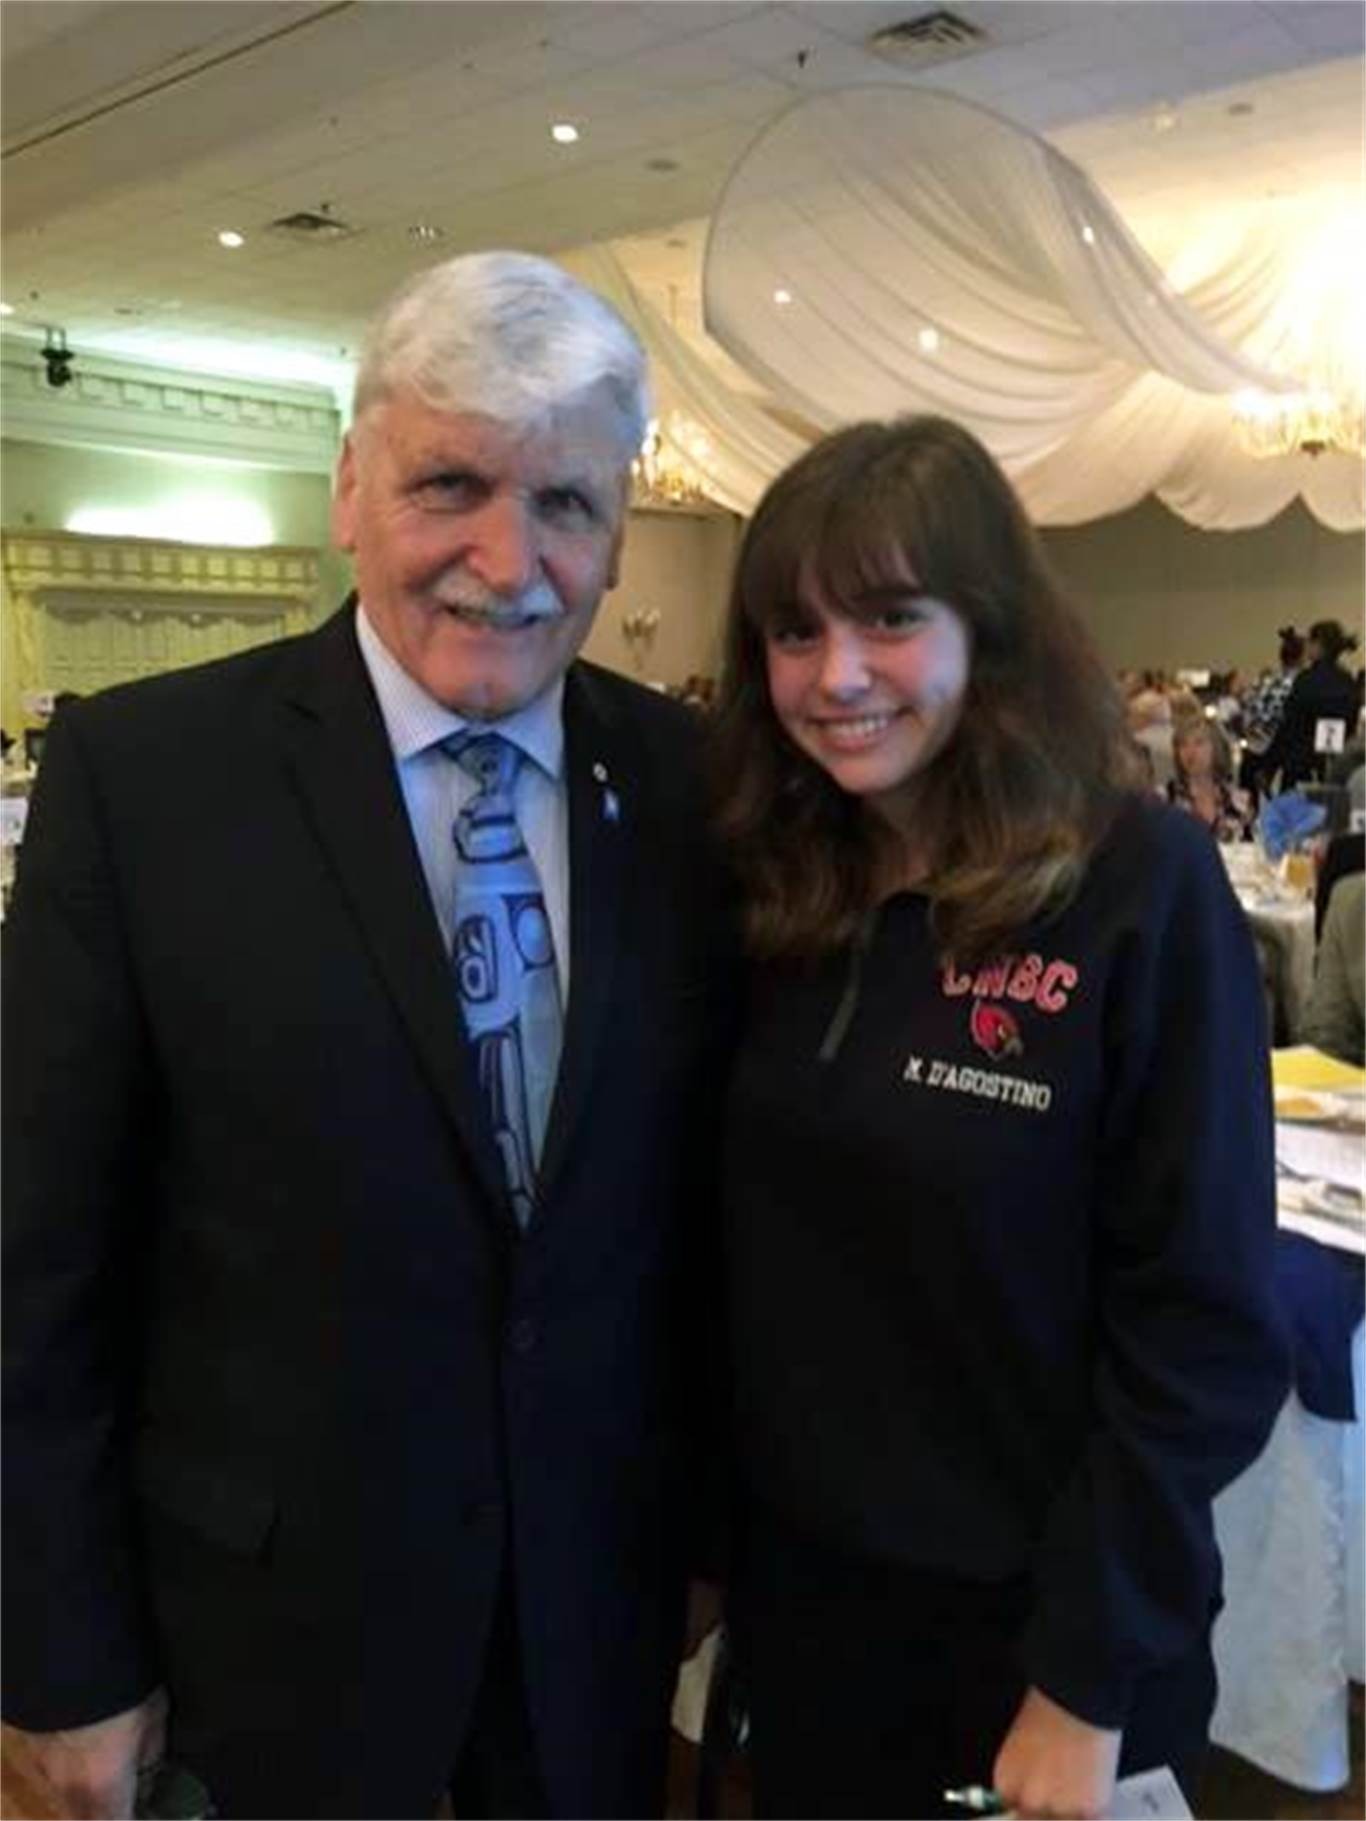 Student Trustee and Student Council President from Cardinal Newman Catholic Secondary School Mikayla D'Agostino with Lieutenant-General, the Honourable Roméo Dallaire (Ret'd).